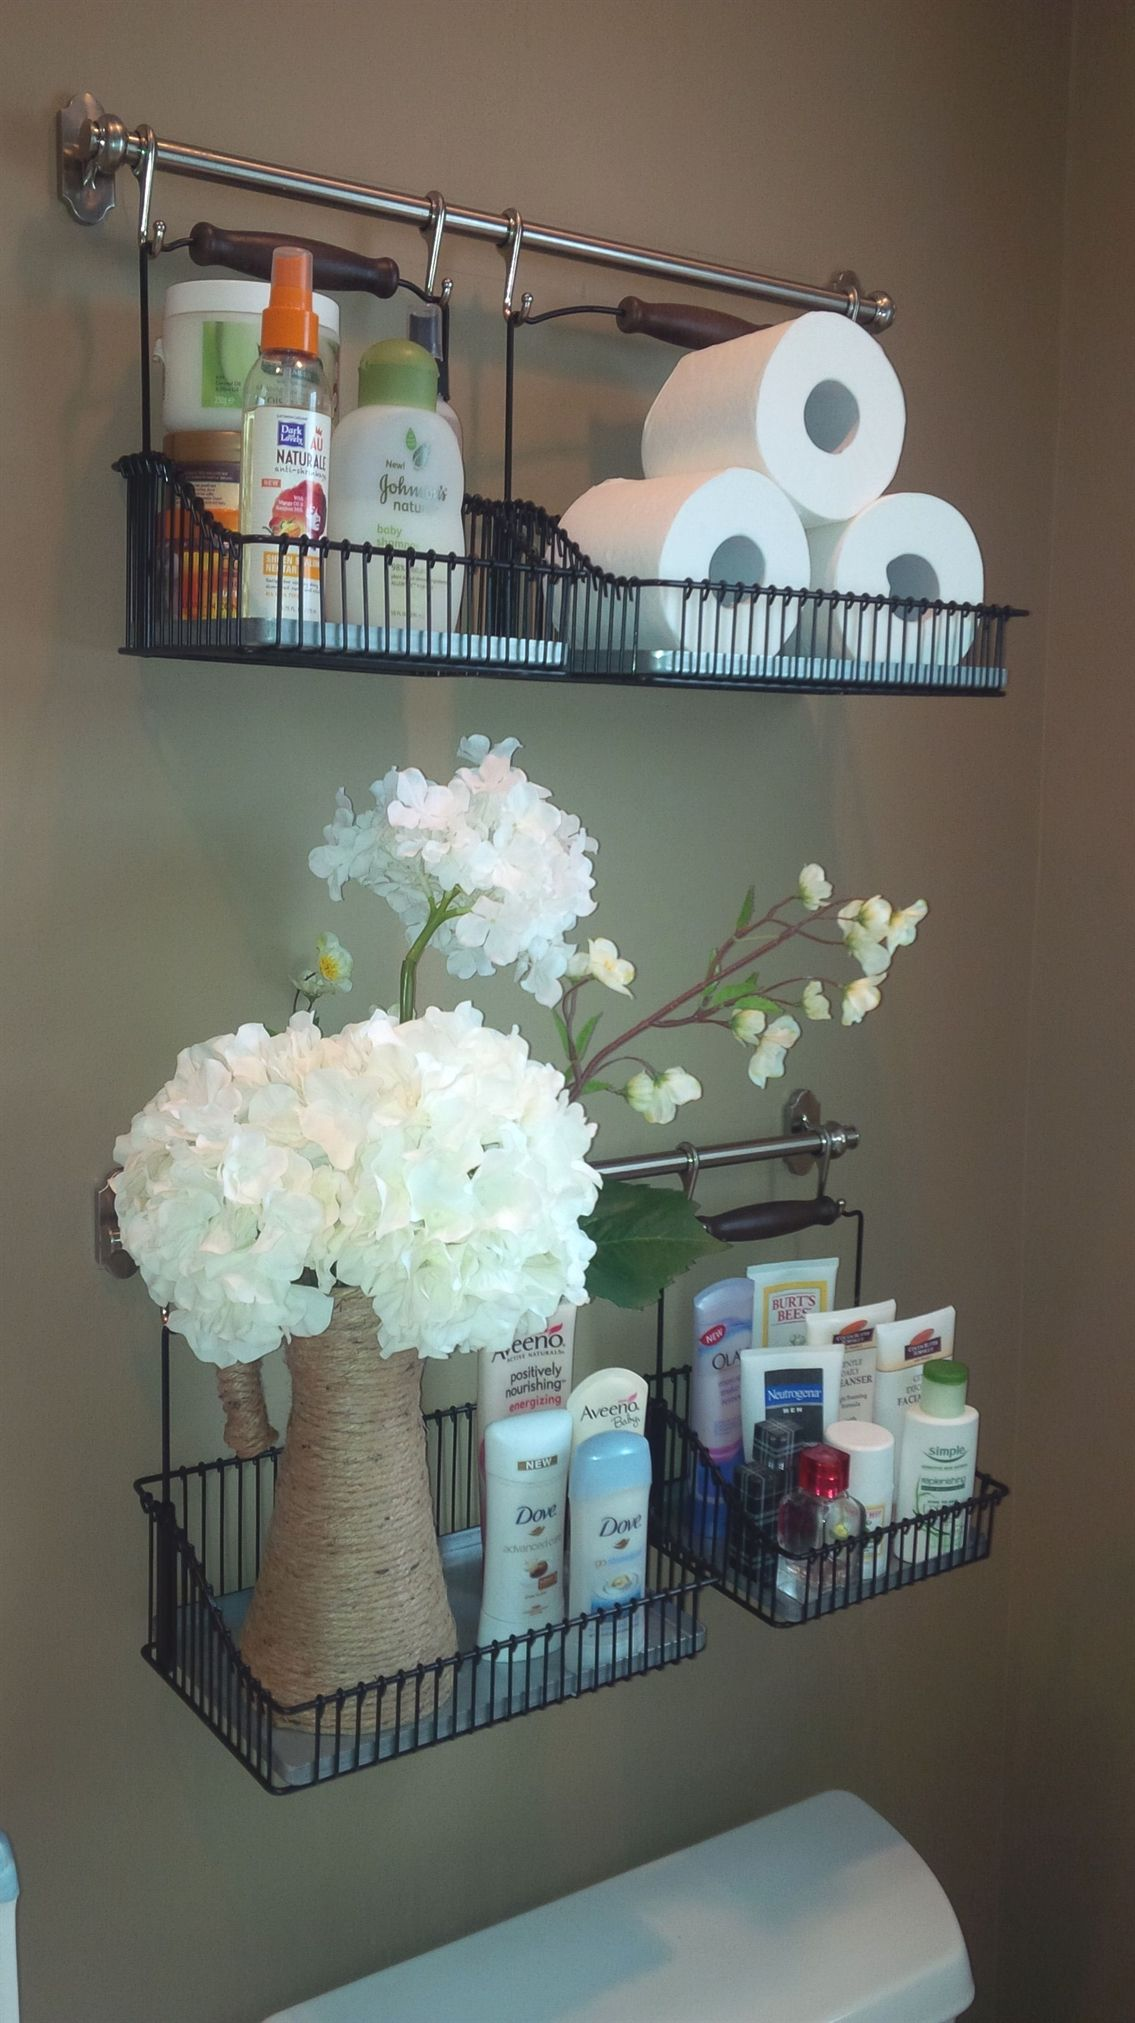 Ikea hack new shelving system in the bathroom bathroomorganization